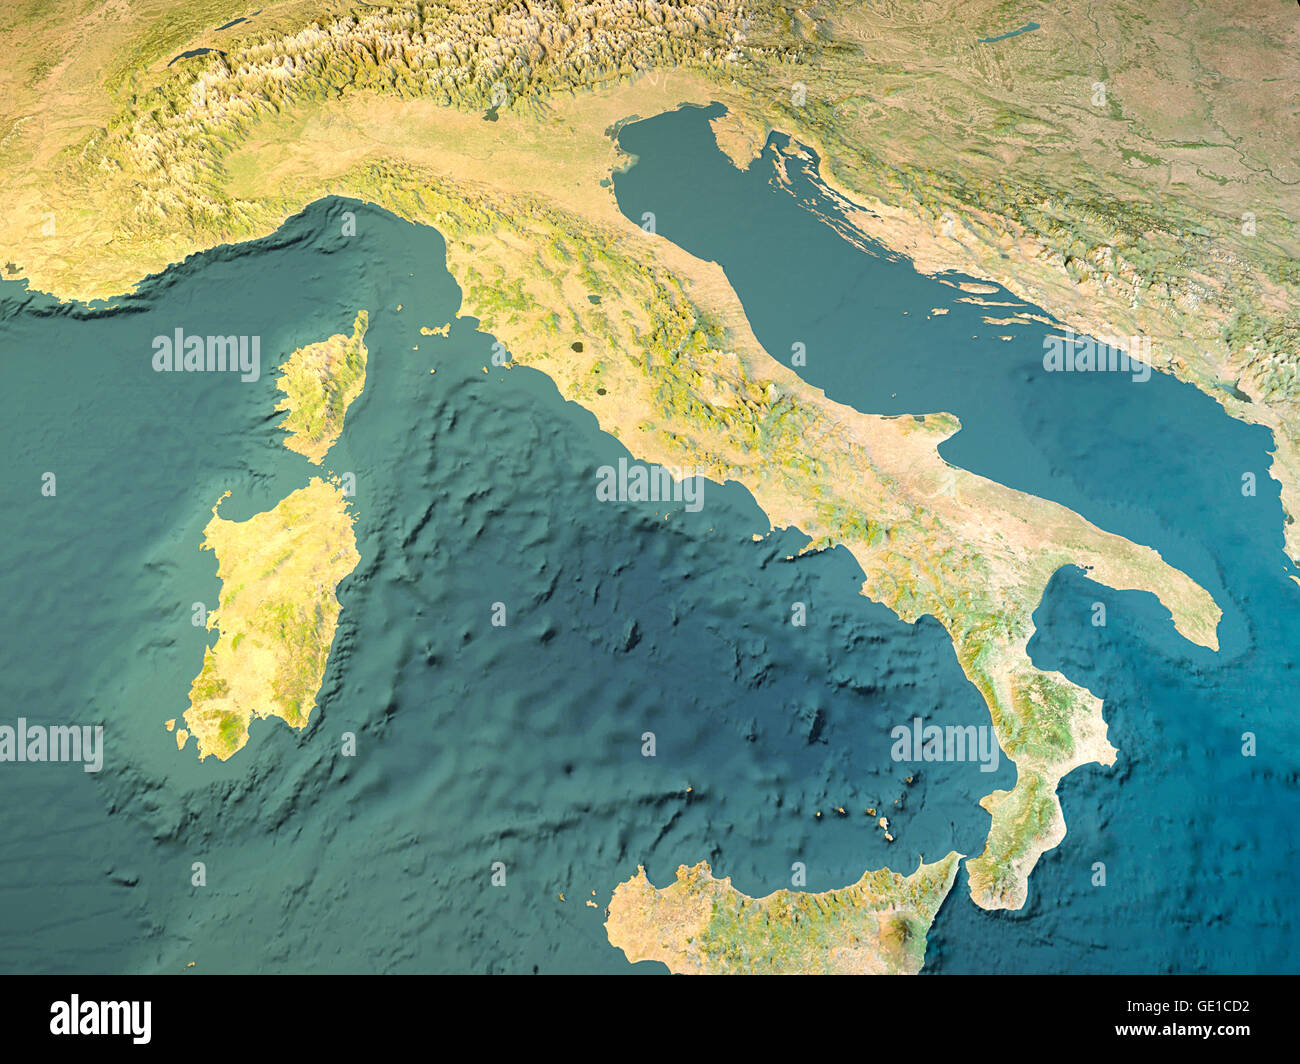 satellite map of italy Italy Physical Map Satellite View Map 3d Rendering Stock Photo